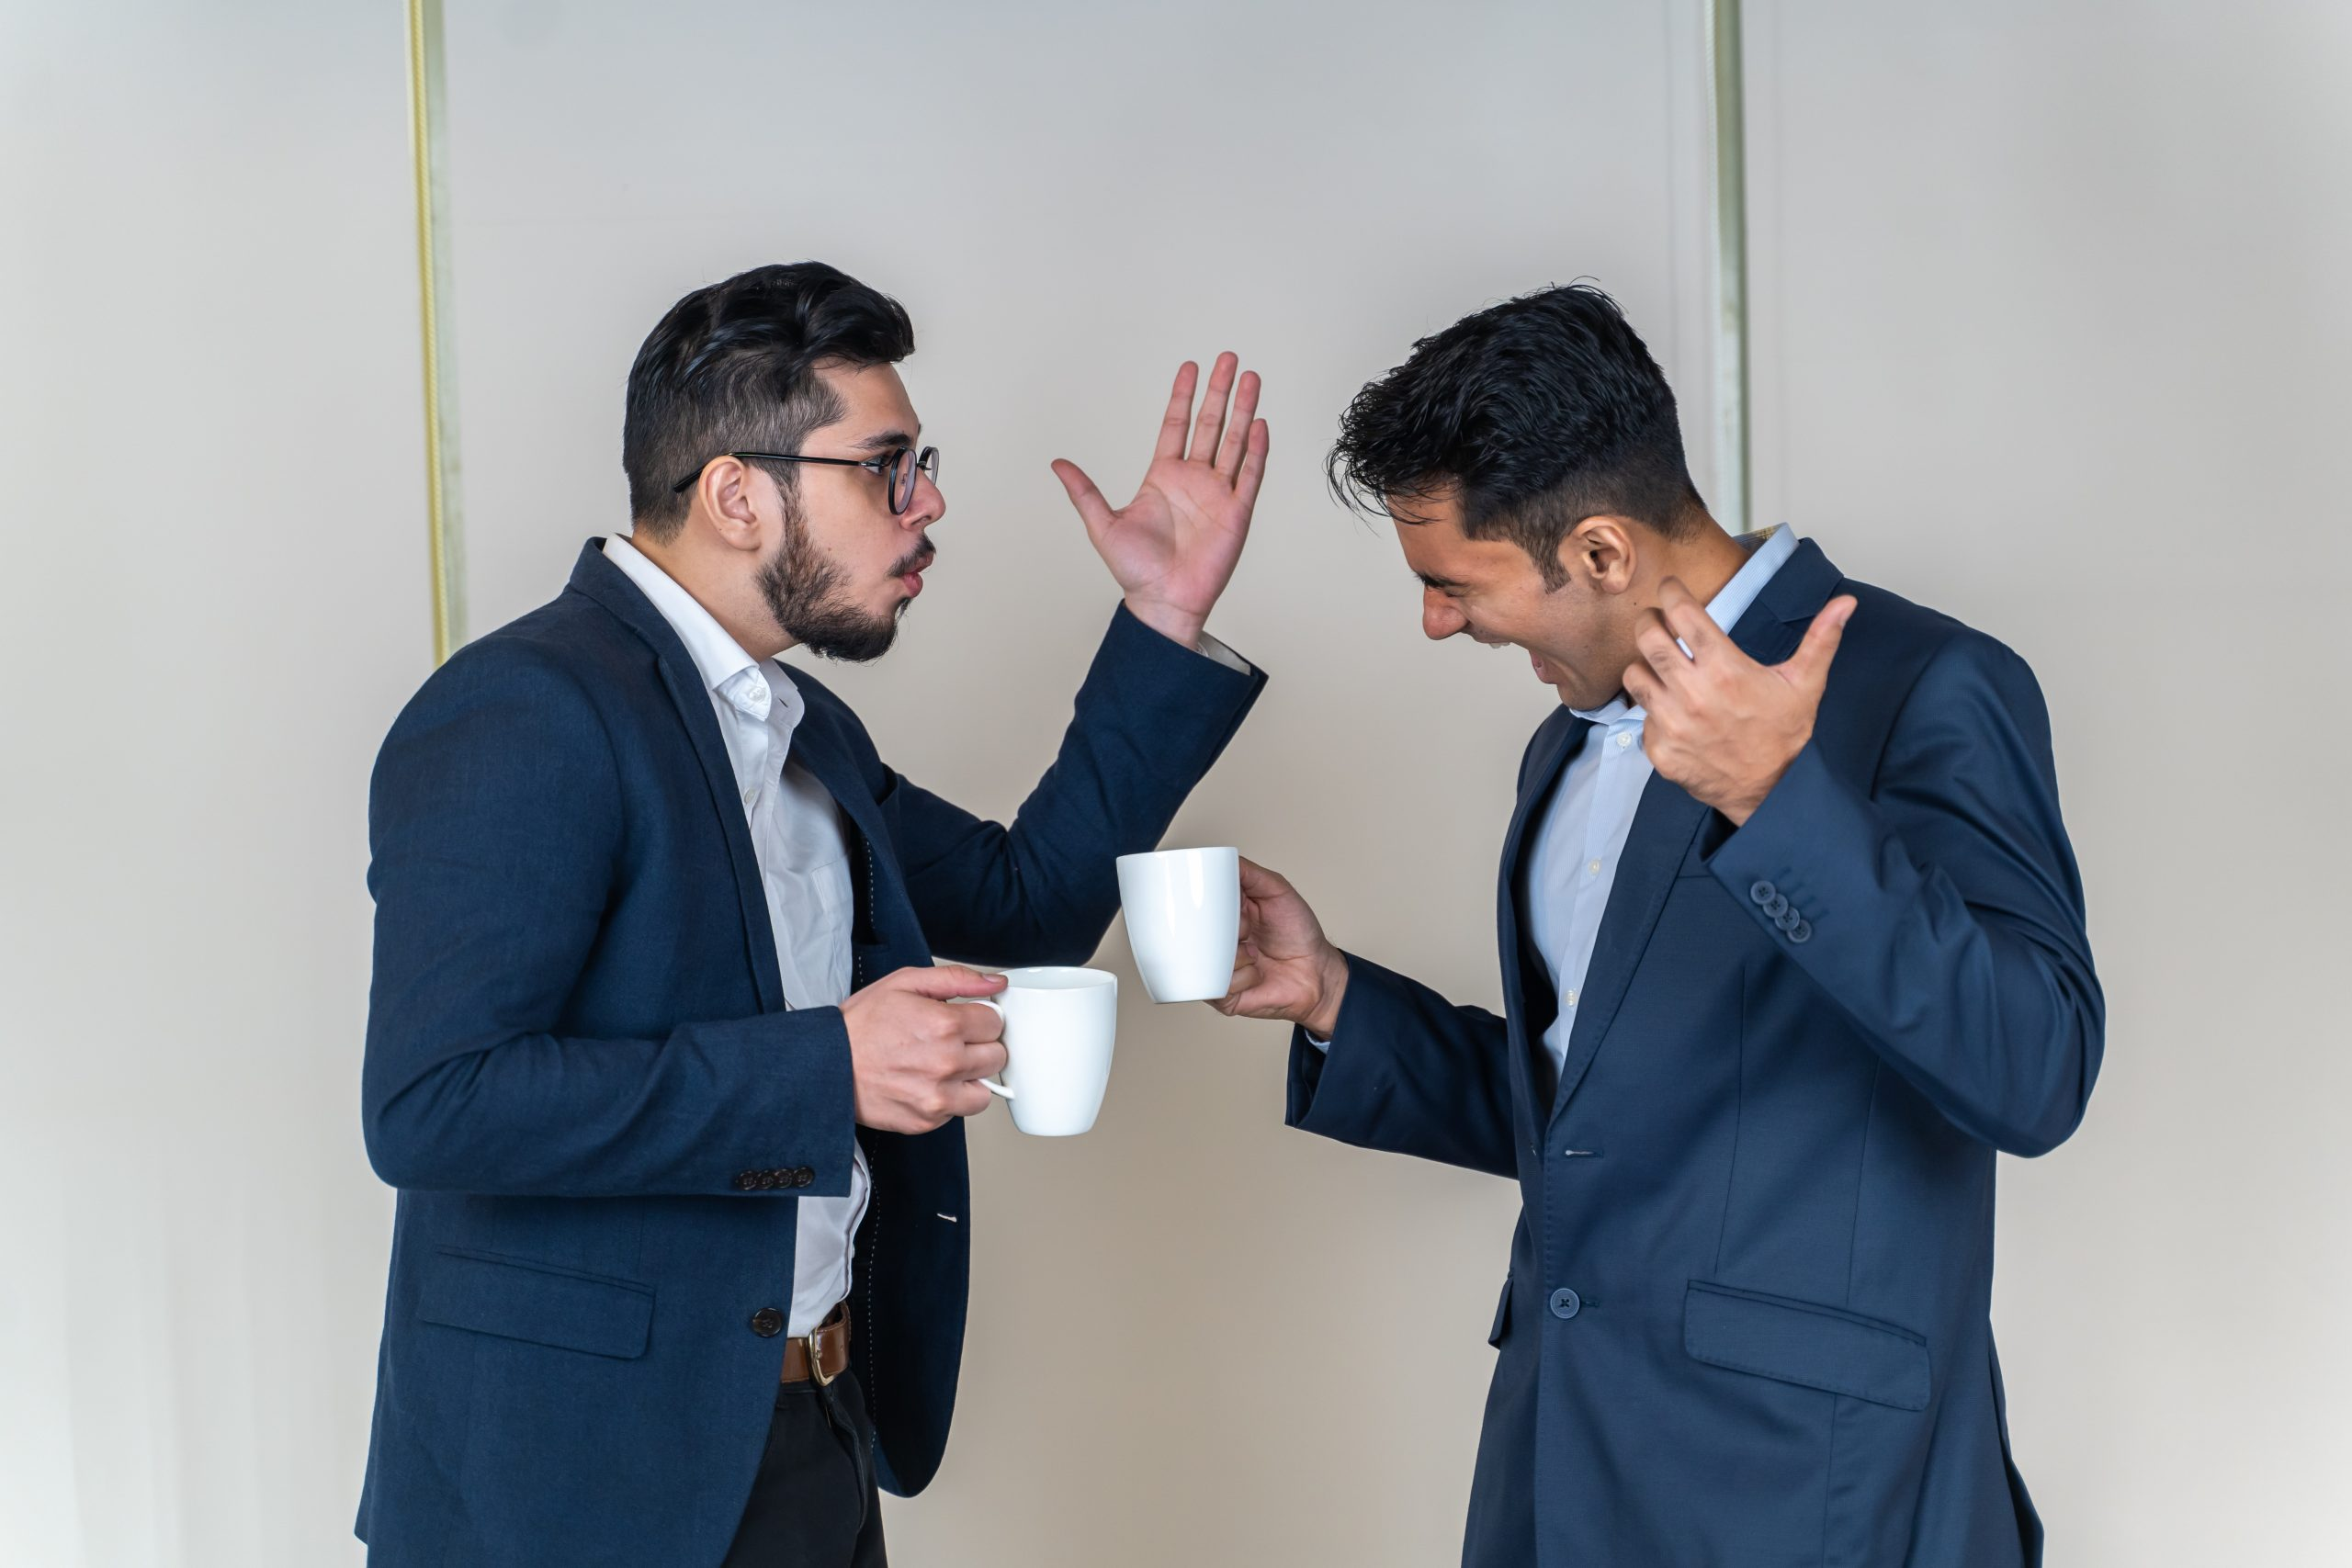 Manager shouting on employee